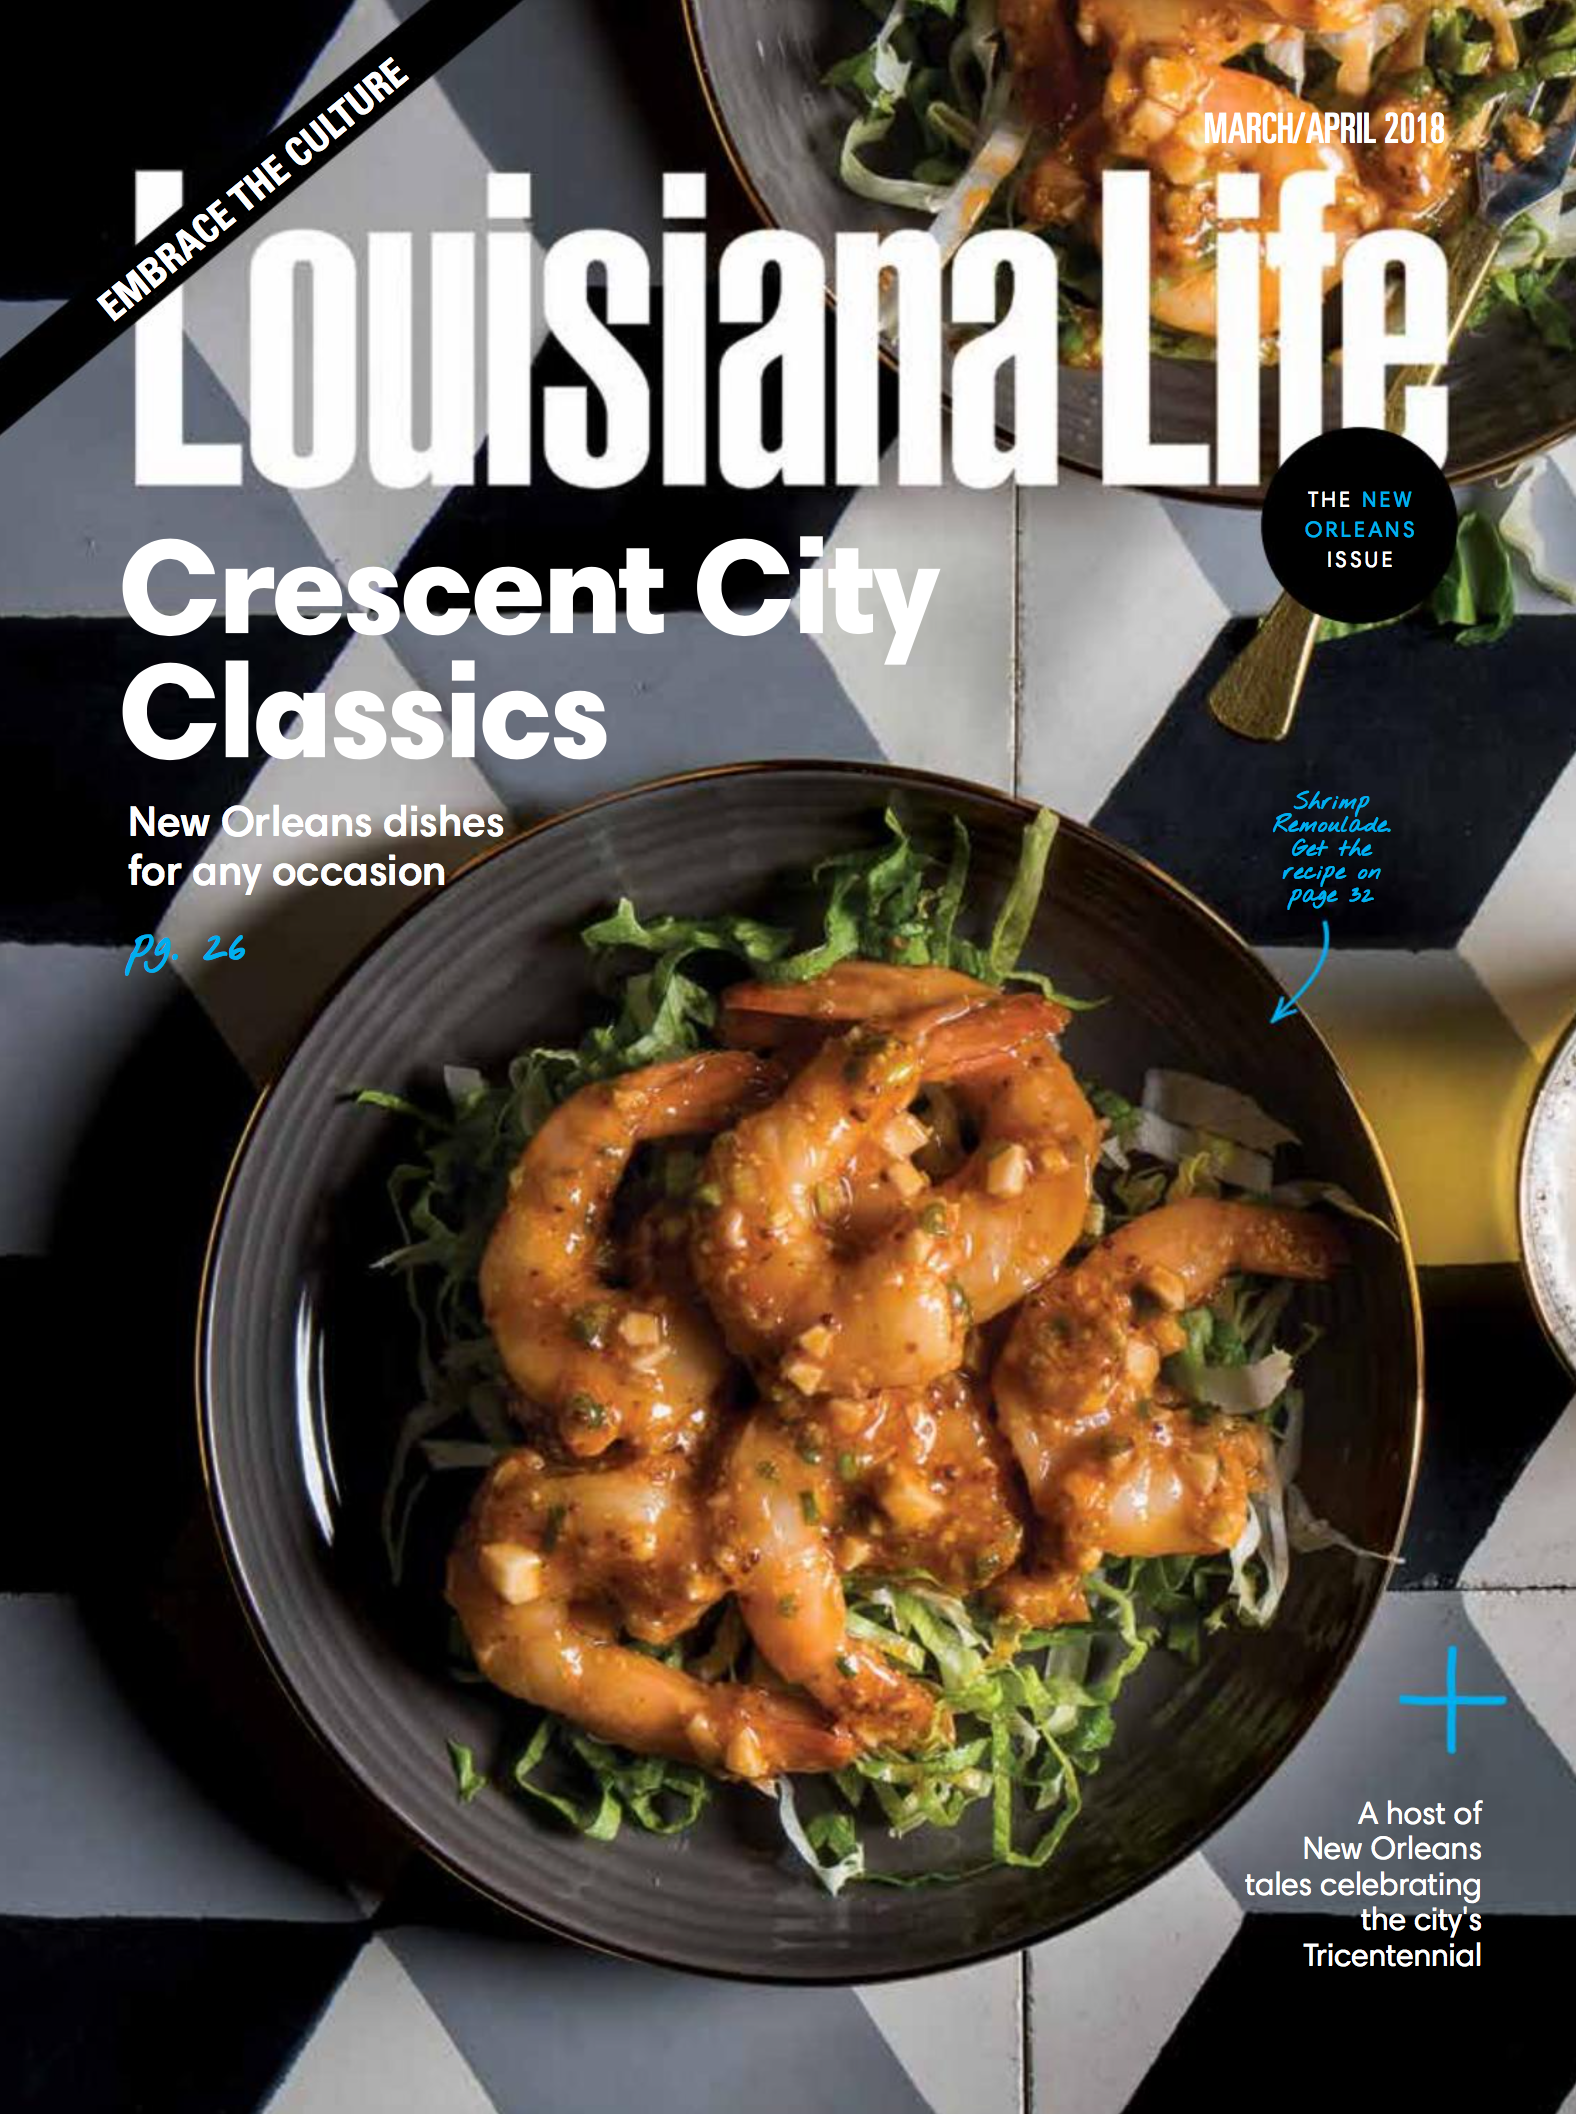 http://www.myneworleans.com/Louisiana-Life/March-April-2018/Crescent-City-Classics/